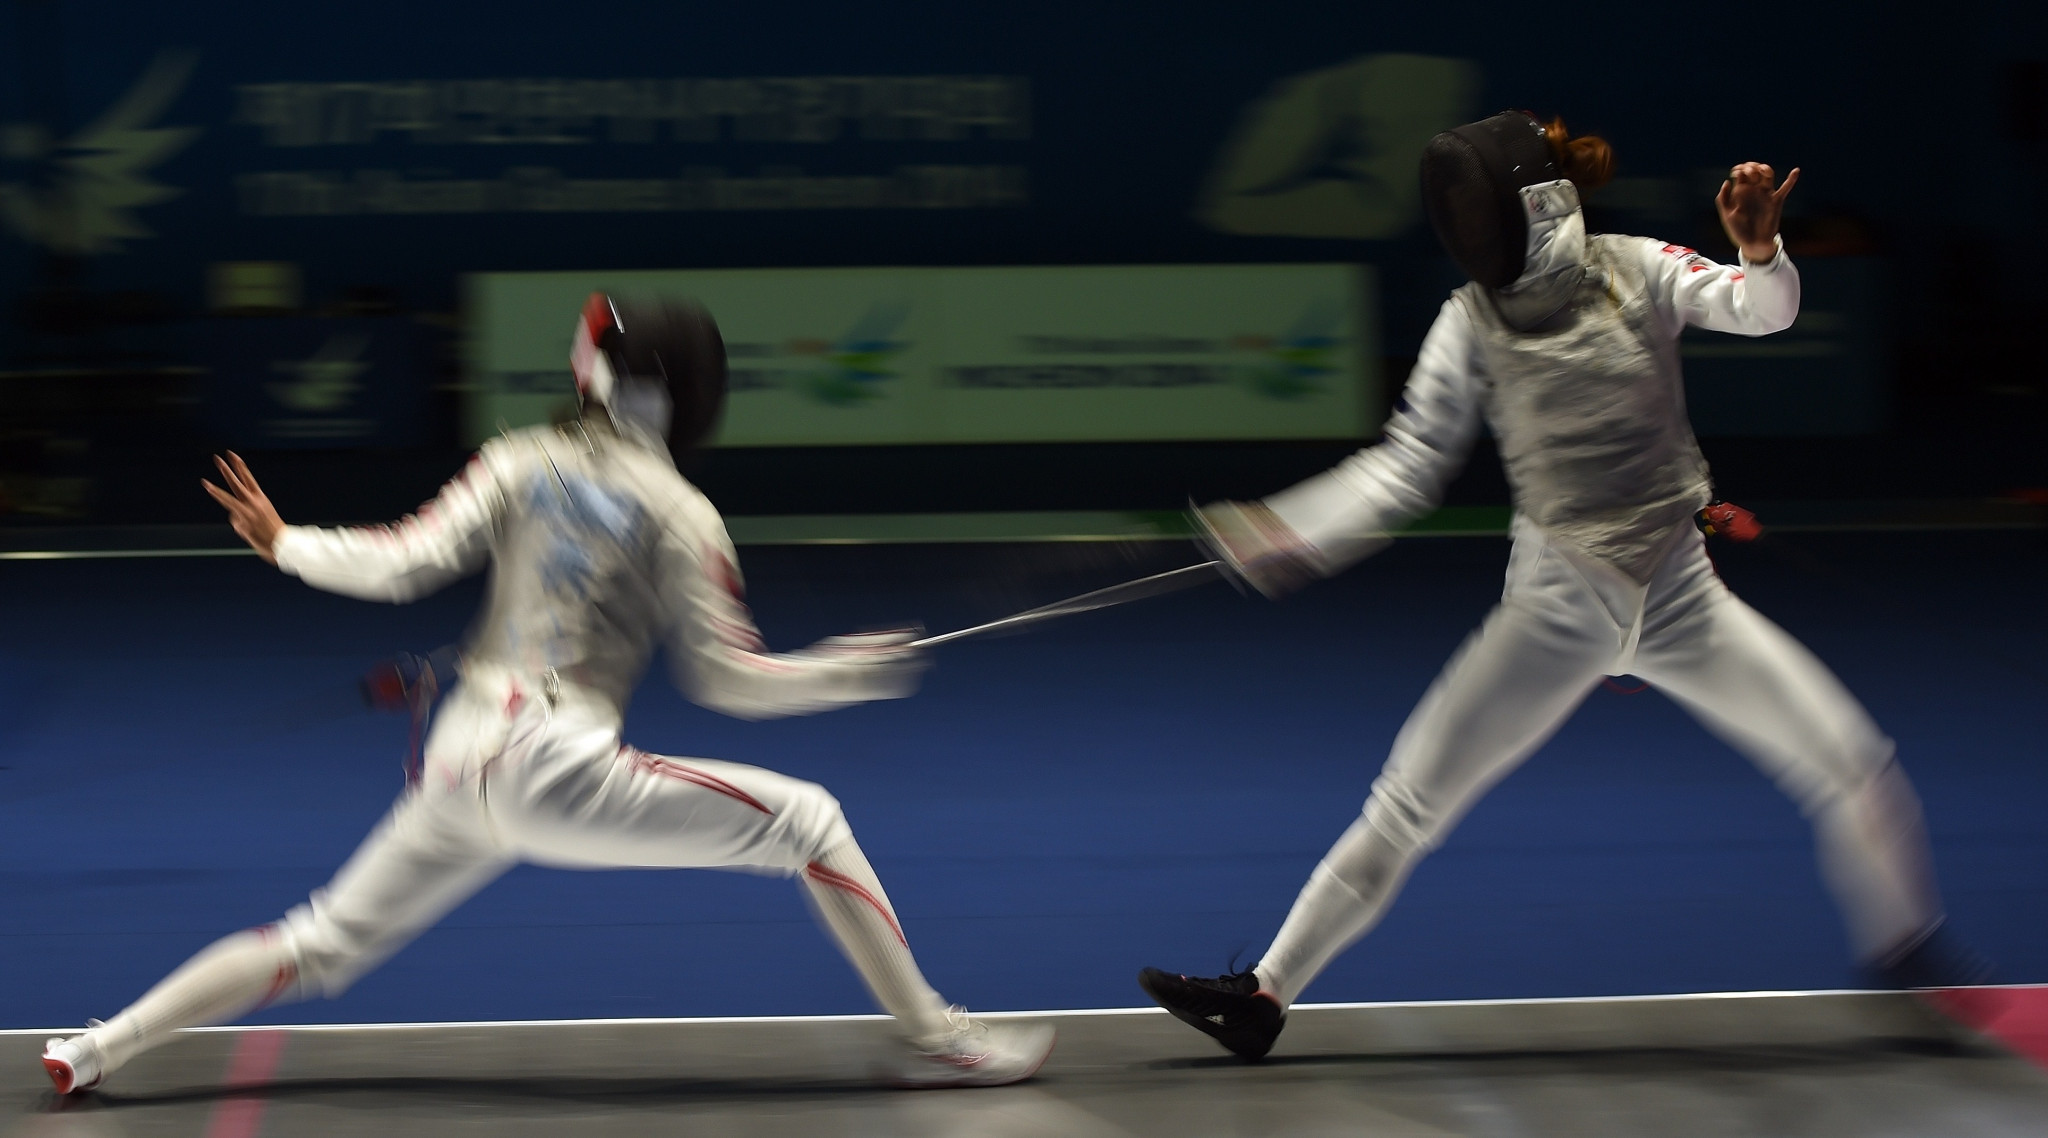 Yanaoka wins through to earn bout with Rio 2016 champion Deriglazova at FIE Women's Foil World Cup in Germany